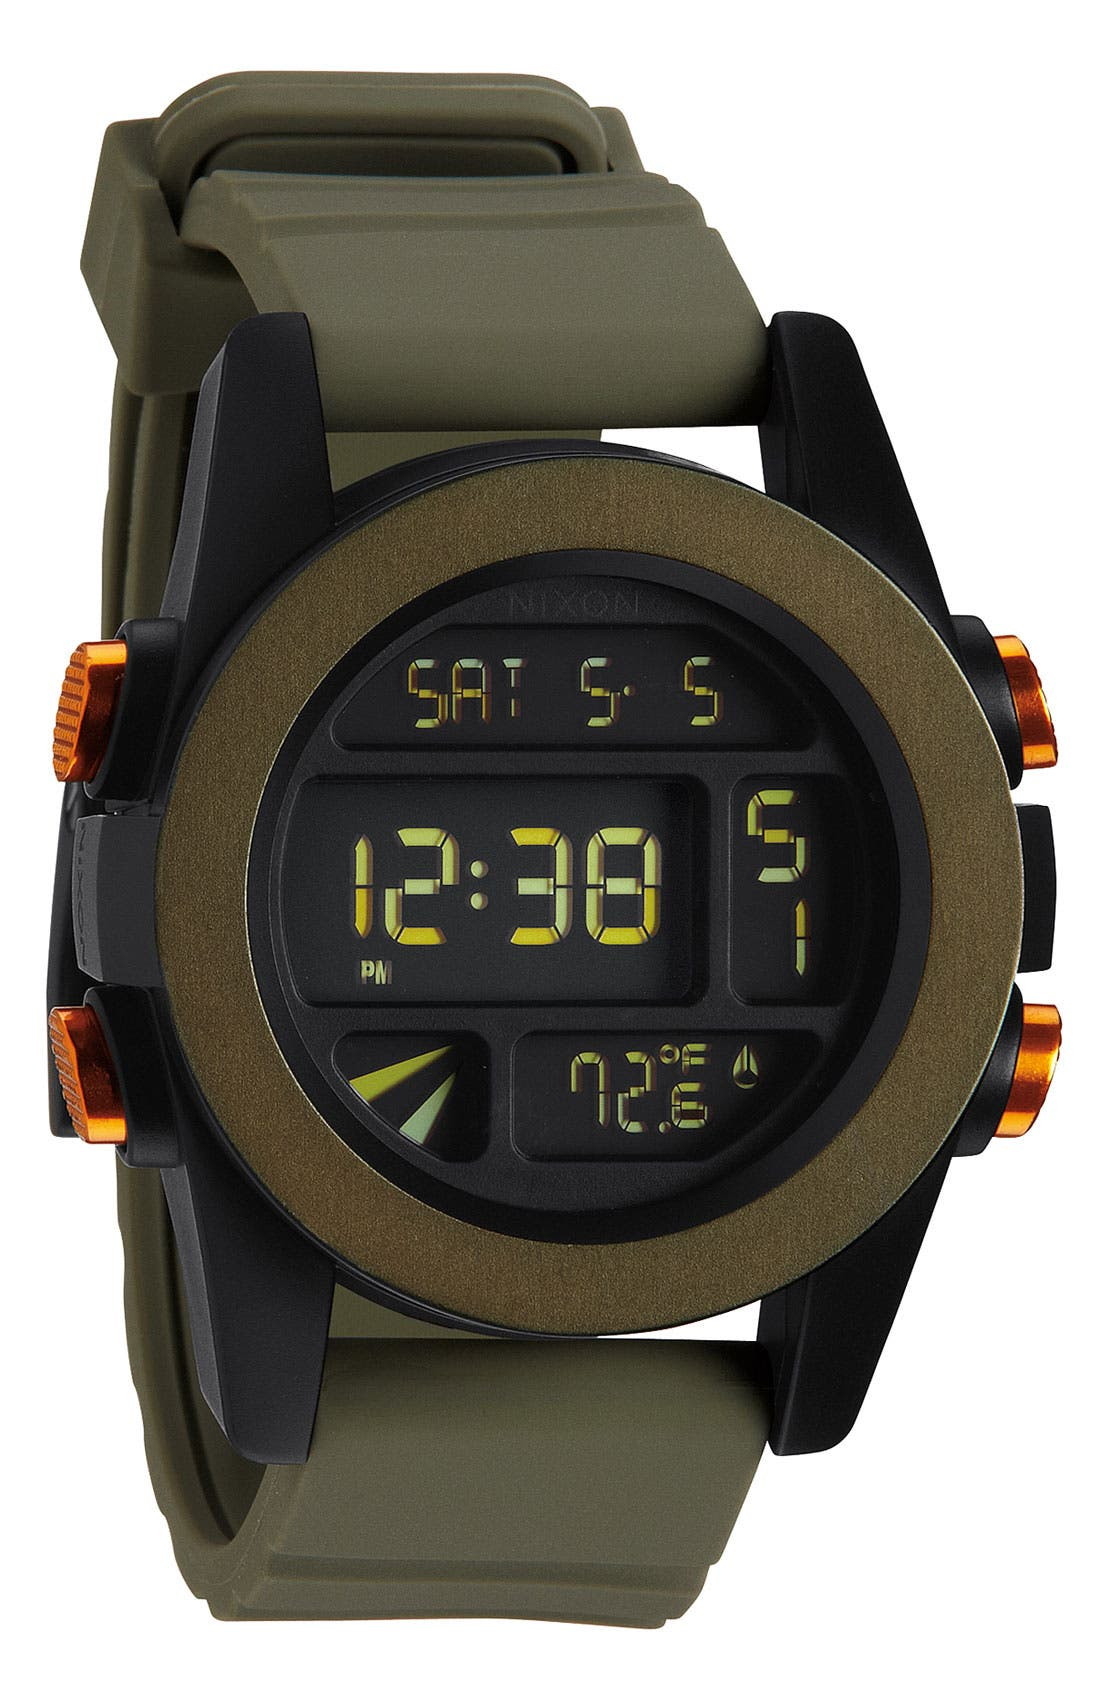 Alternate Image 1 Selected - Nixon 'The Anodaze Unit' Digital Watch, 49mm